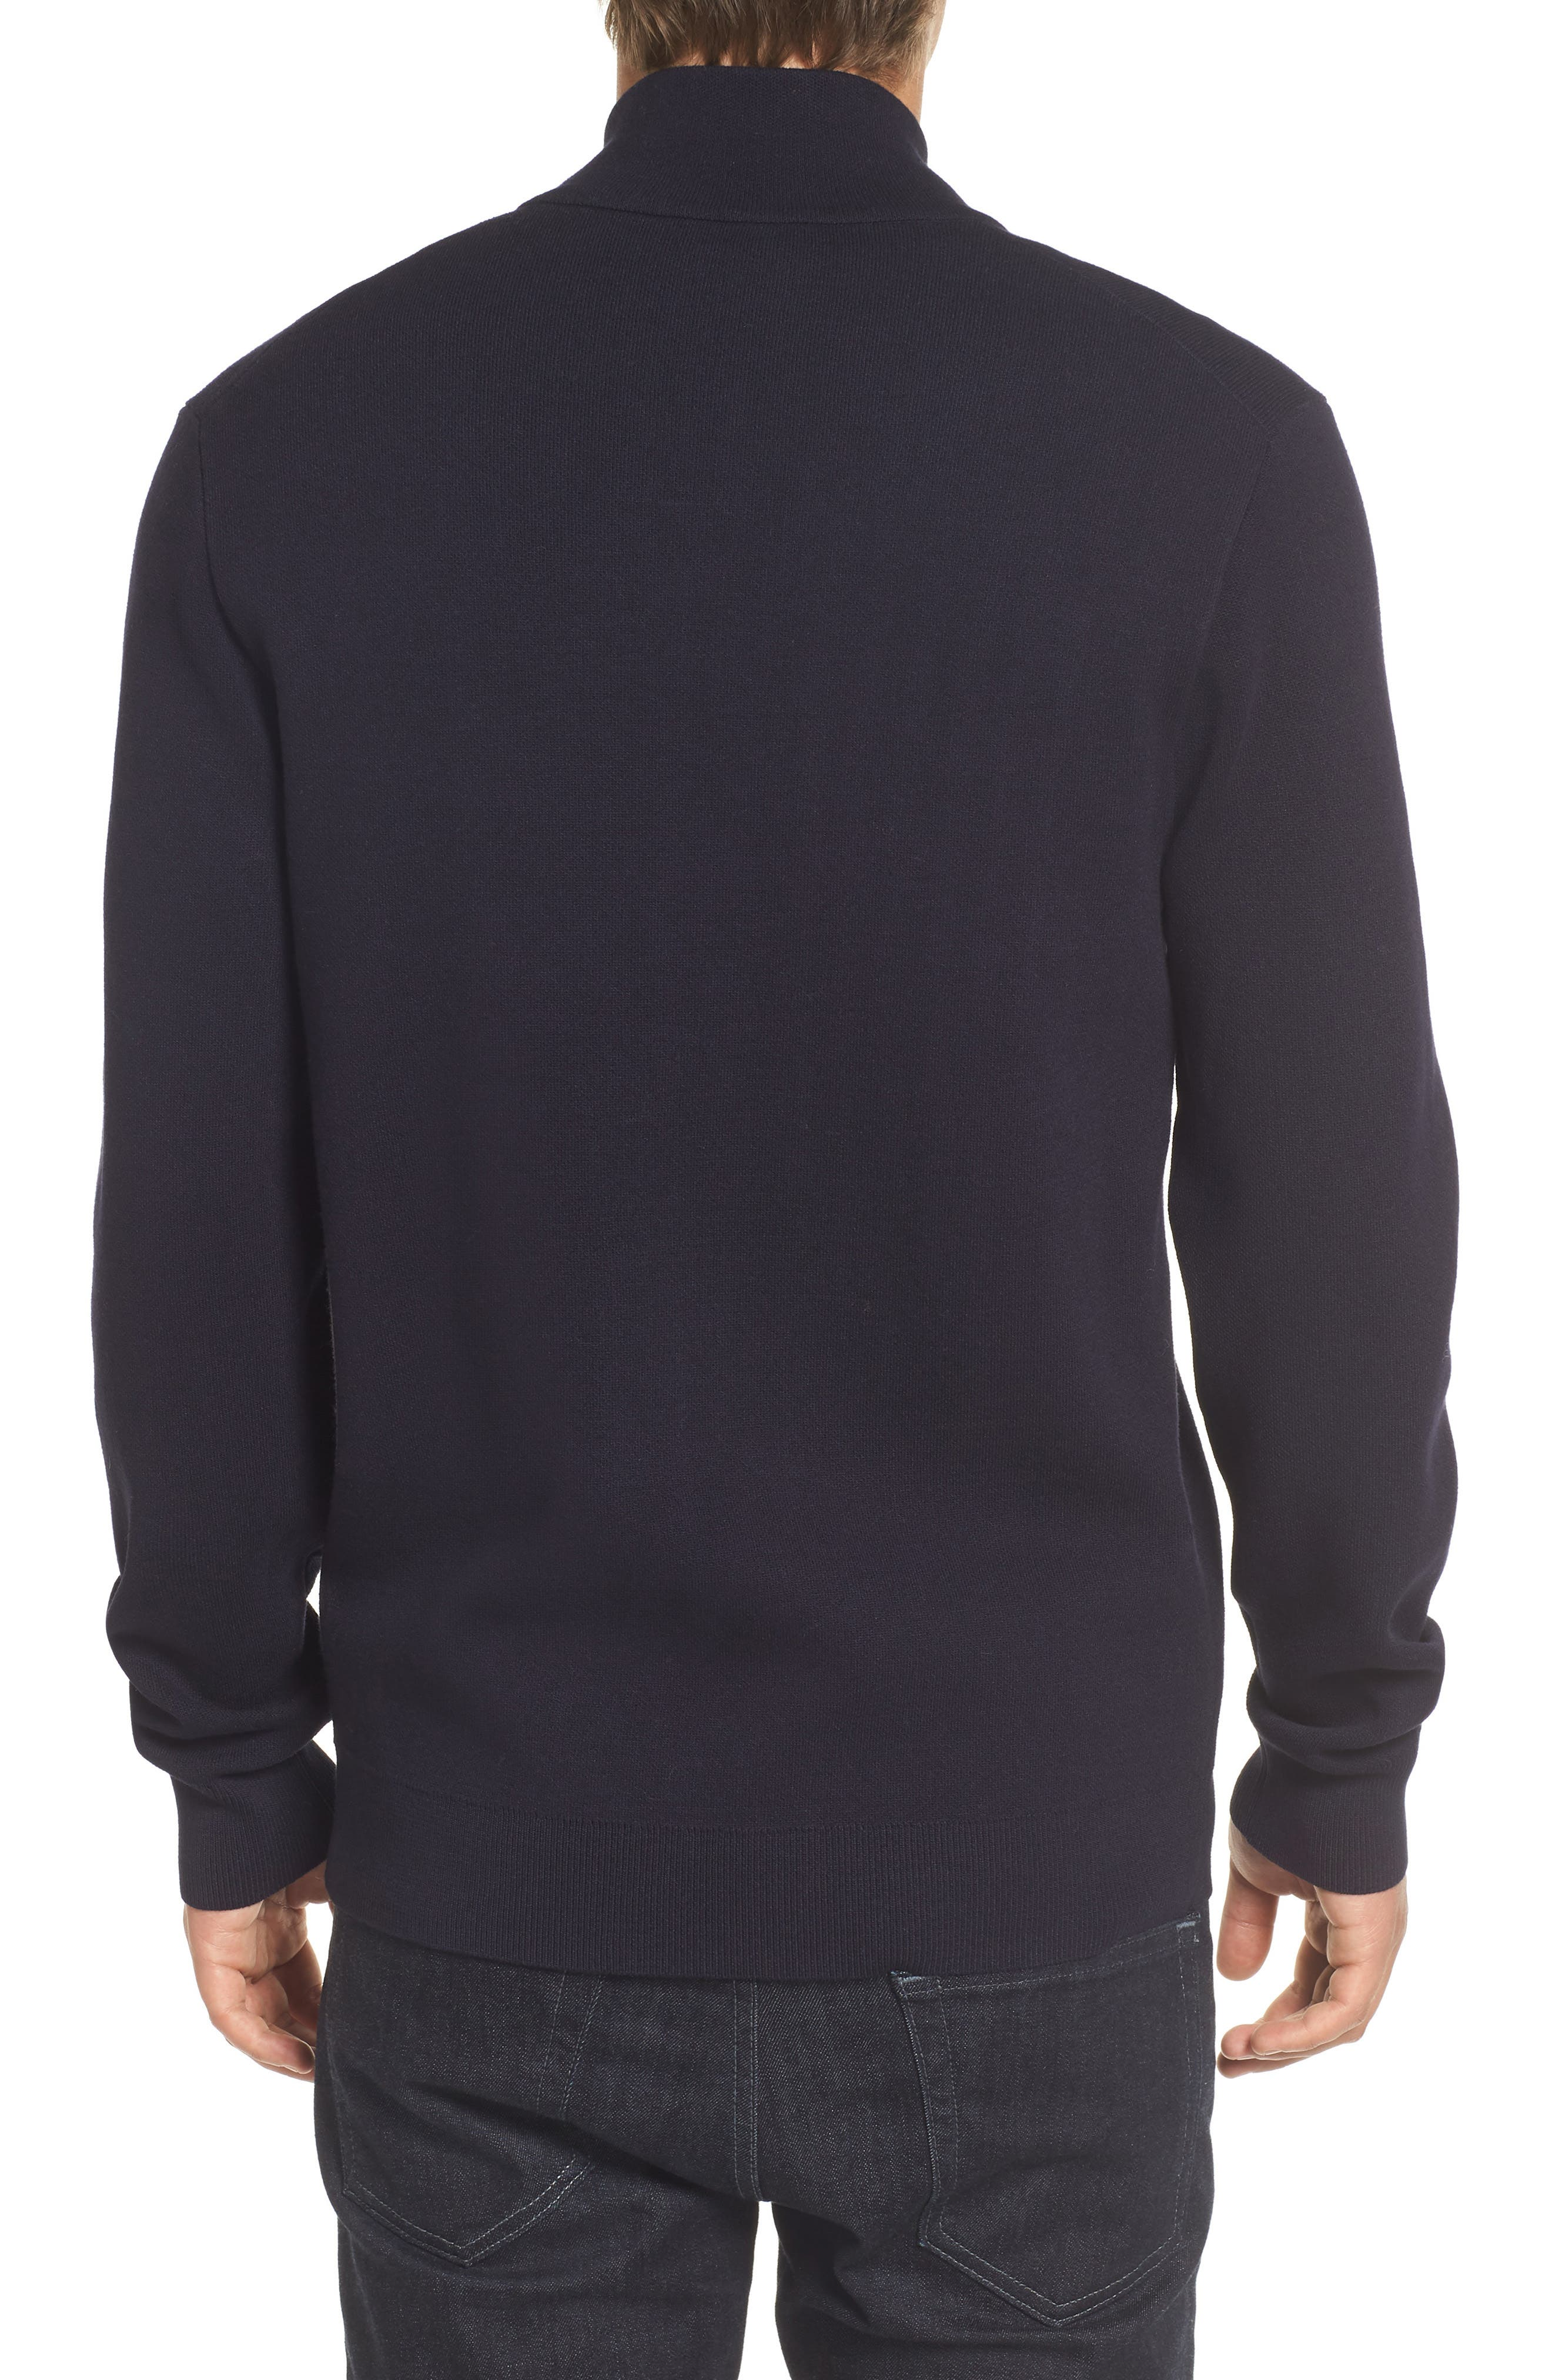 Lakra Zip-Up Sweater,                             Alternate thumbnail 2, color,                             Marine Blue